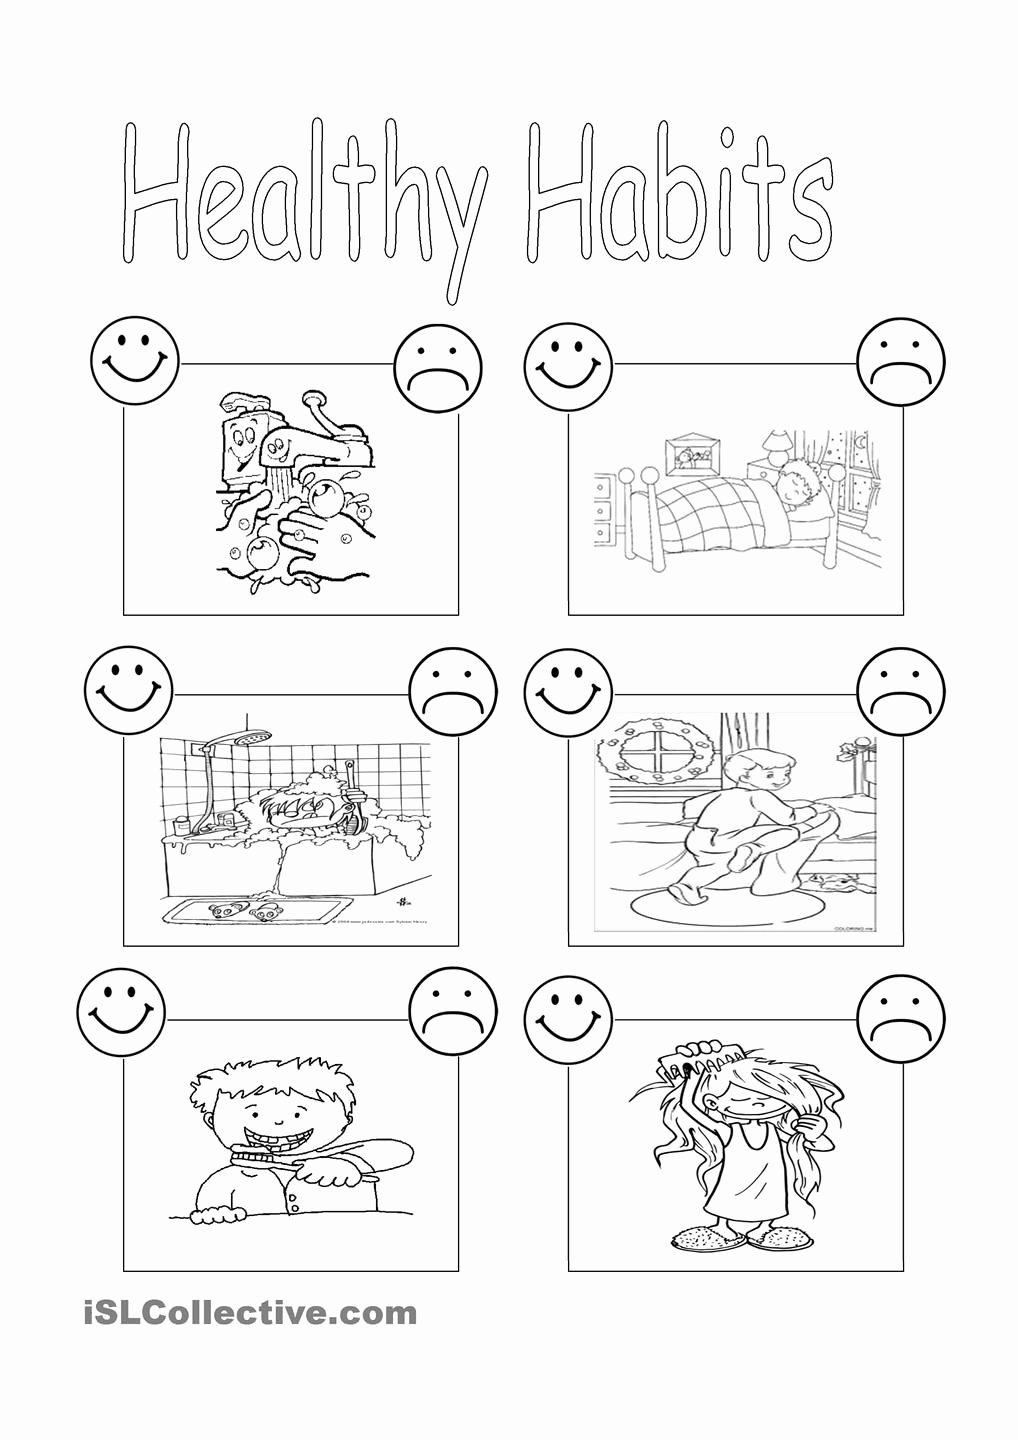 Healthy Habits Worksheets for Preschoolers Inspirational Healthy Habits